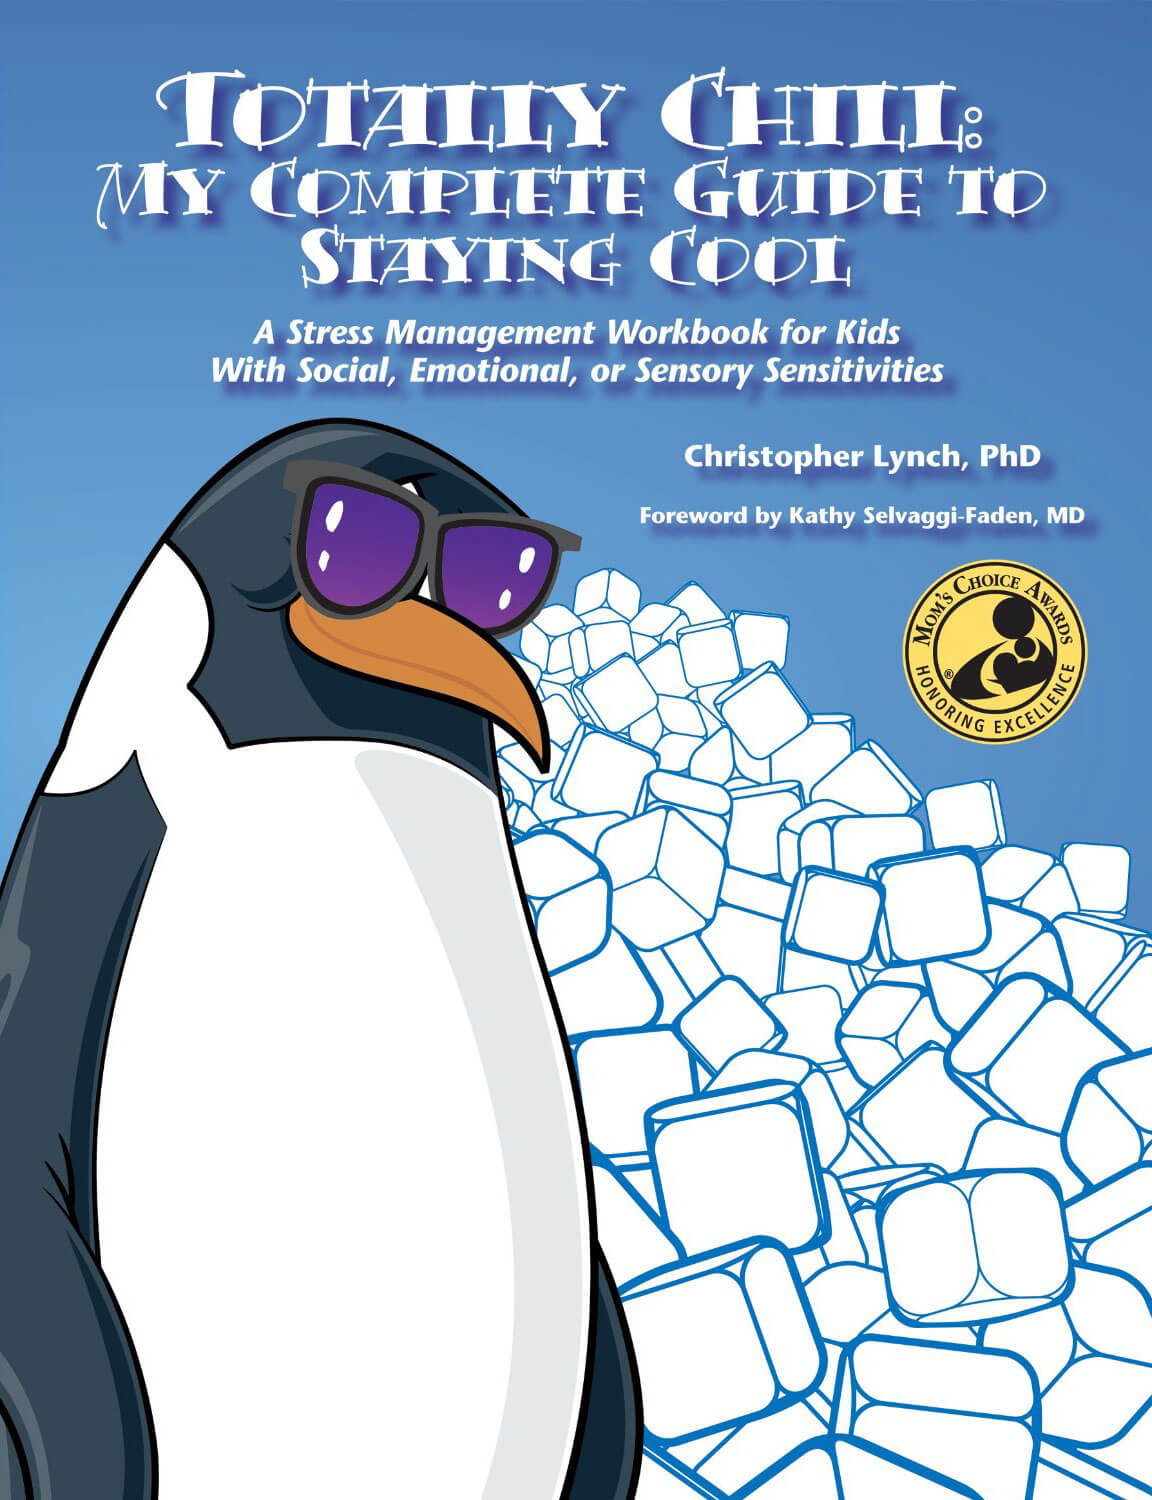 Totally Chill: My Complete Guide to Staying Cool - A Stress Management Workbook for Kids With Social, Emotional, or Sensory Sensitivities